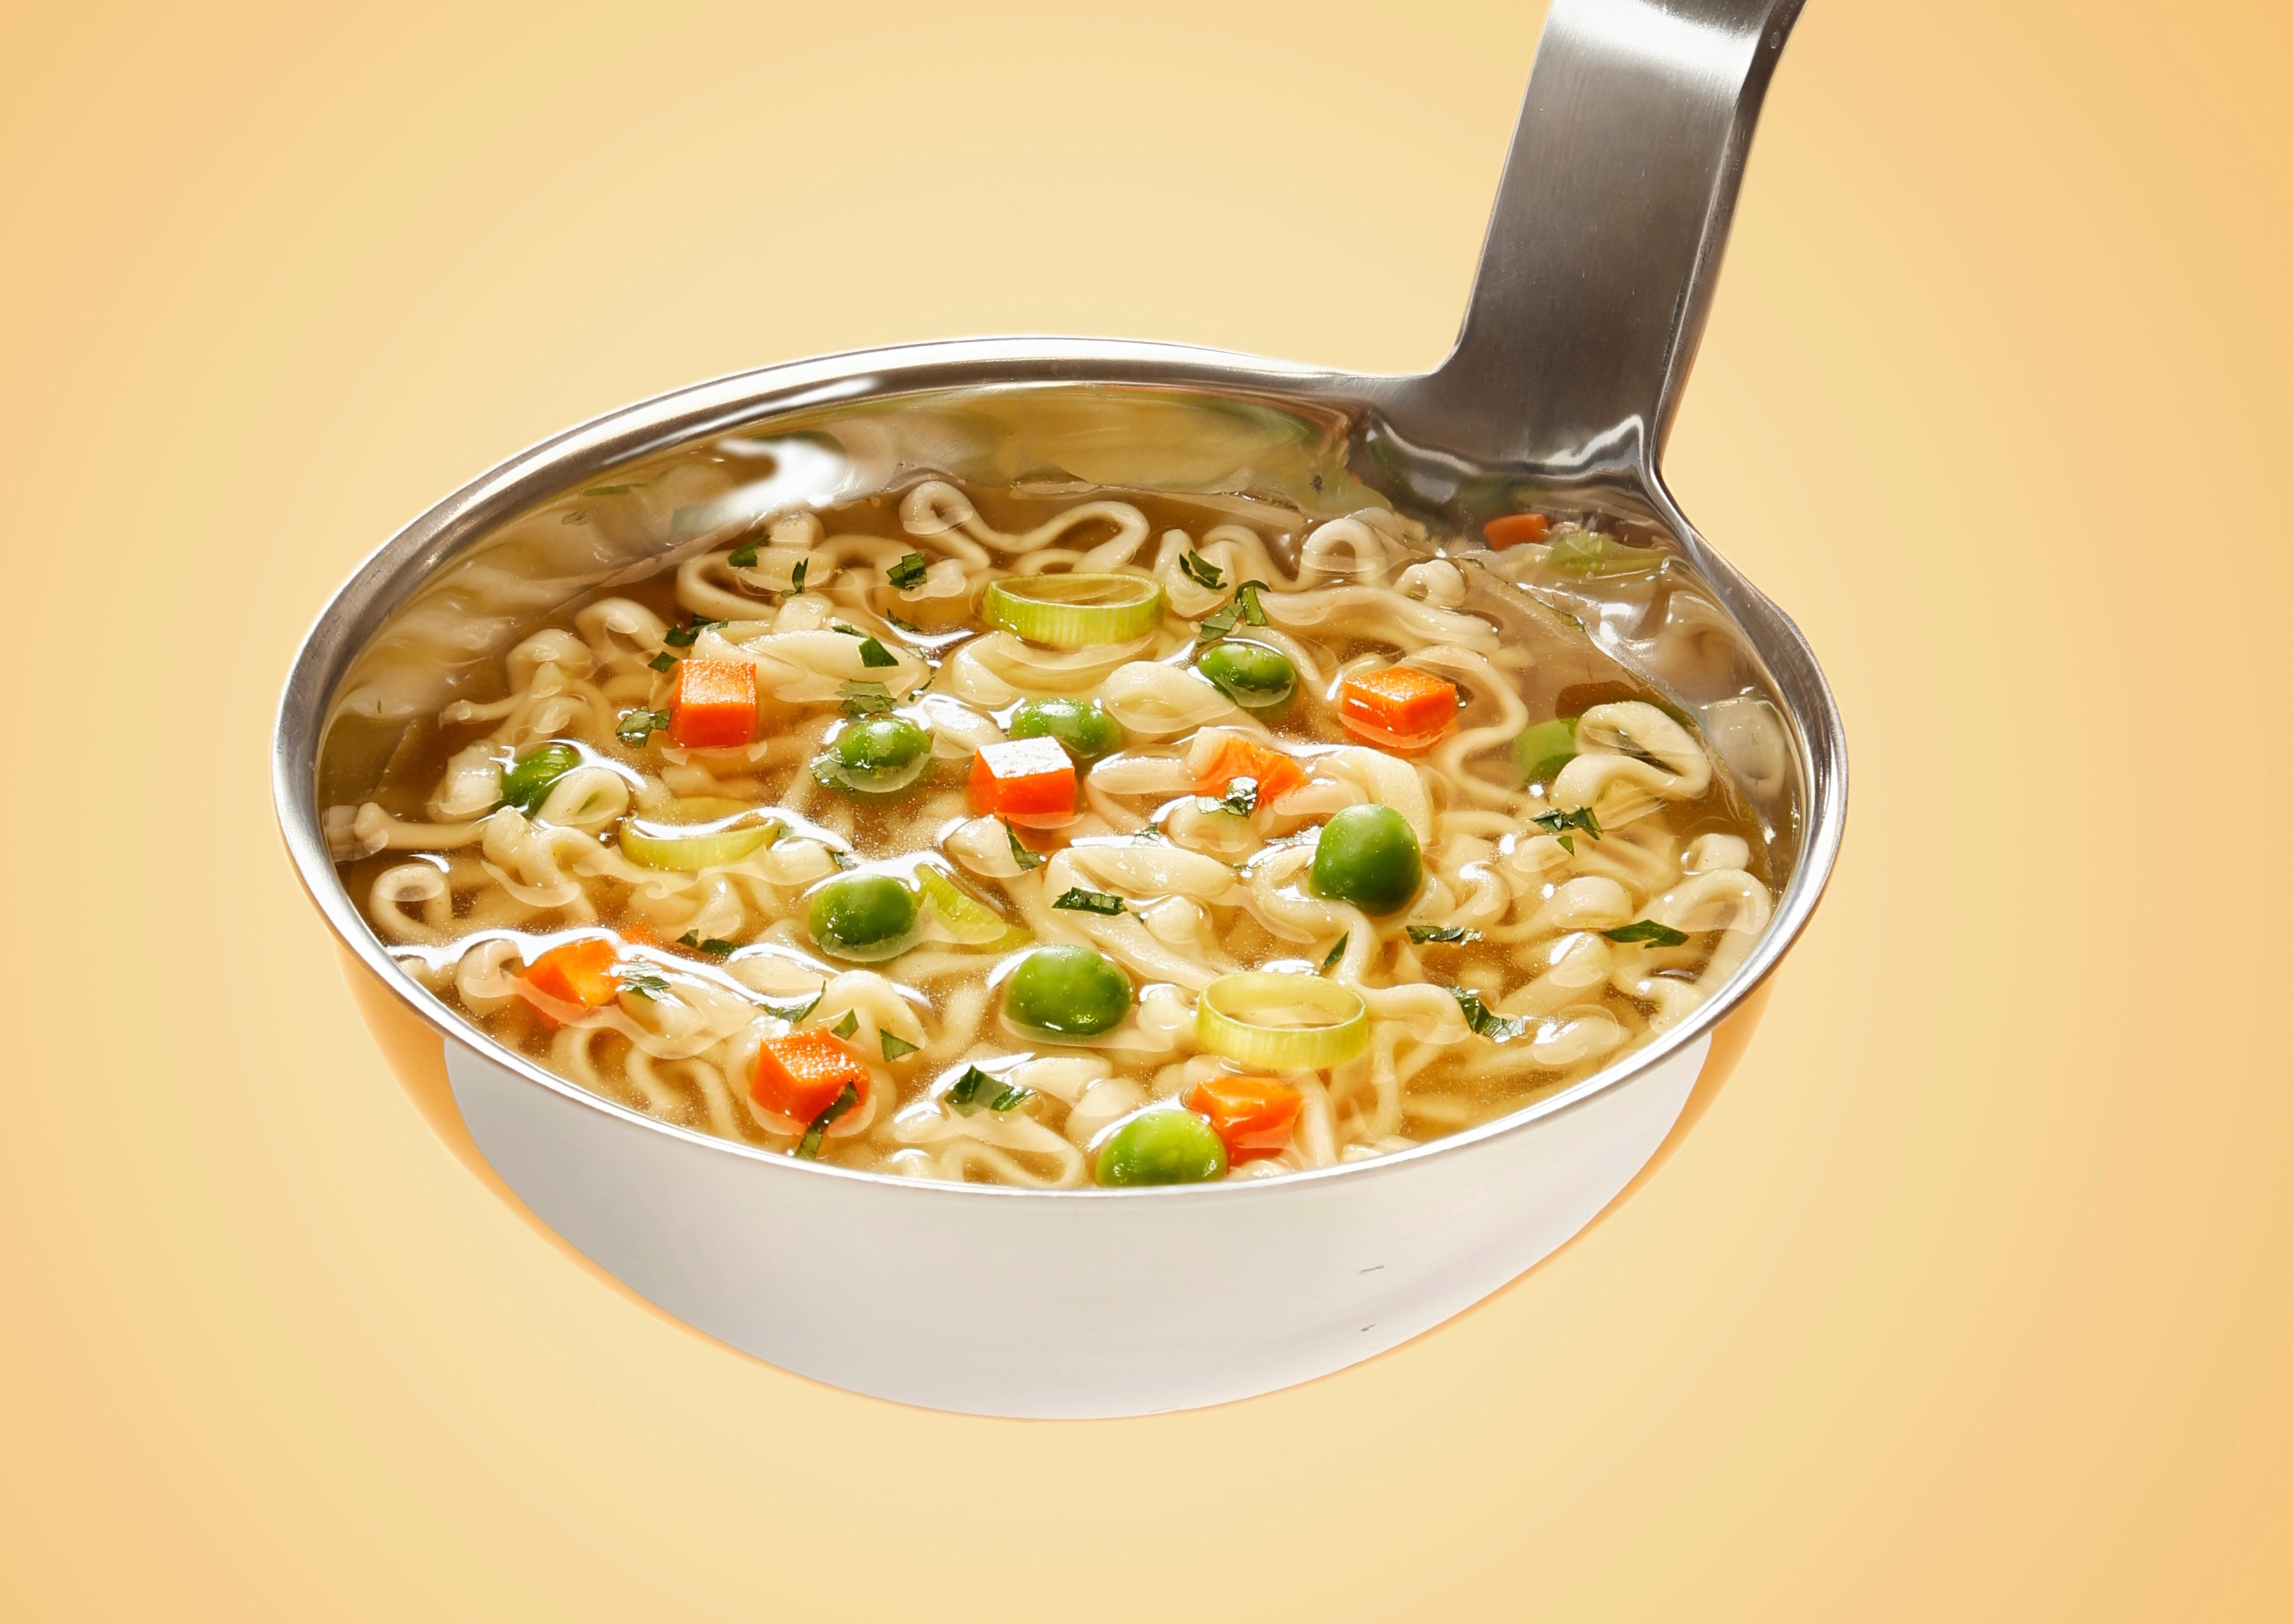 history of instant noodles Posts about history of instant noodles written by little borneo girl.